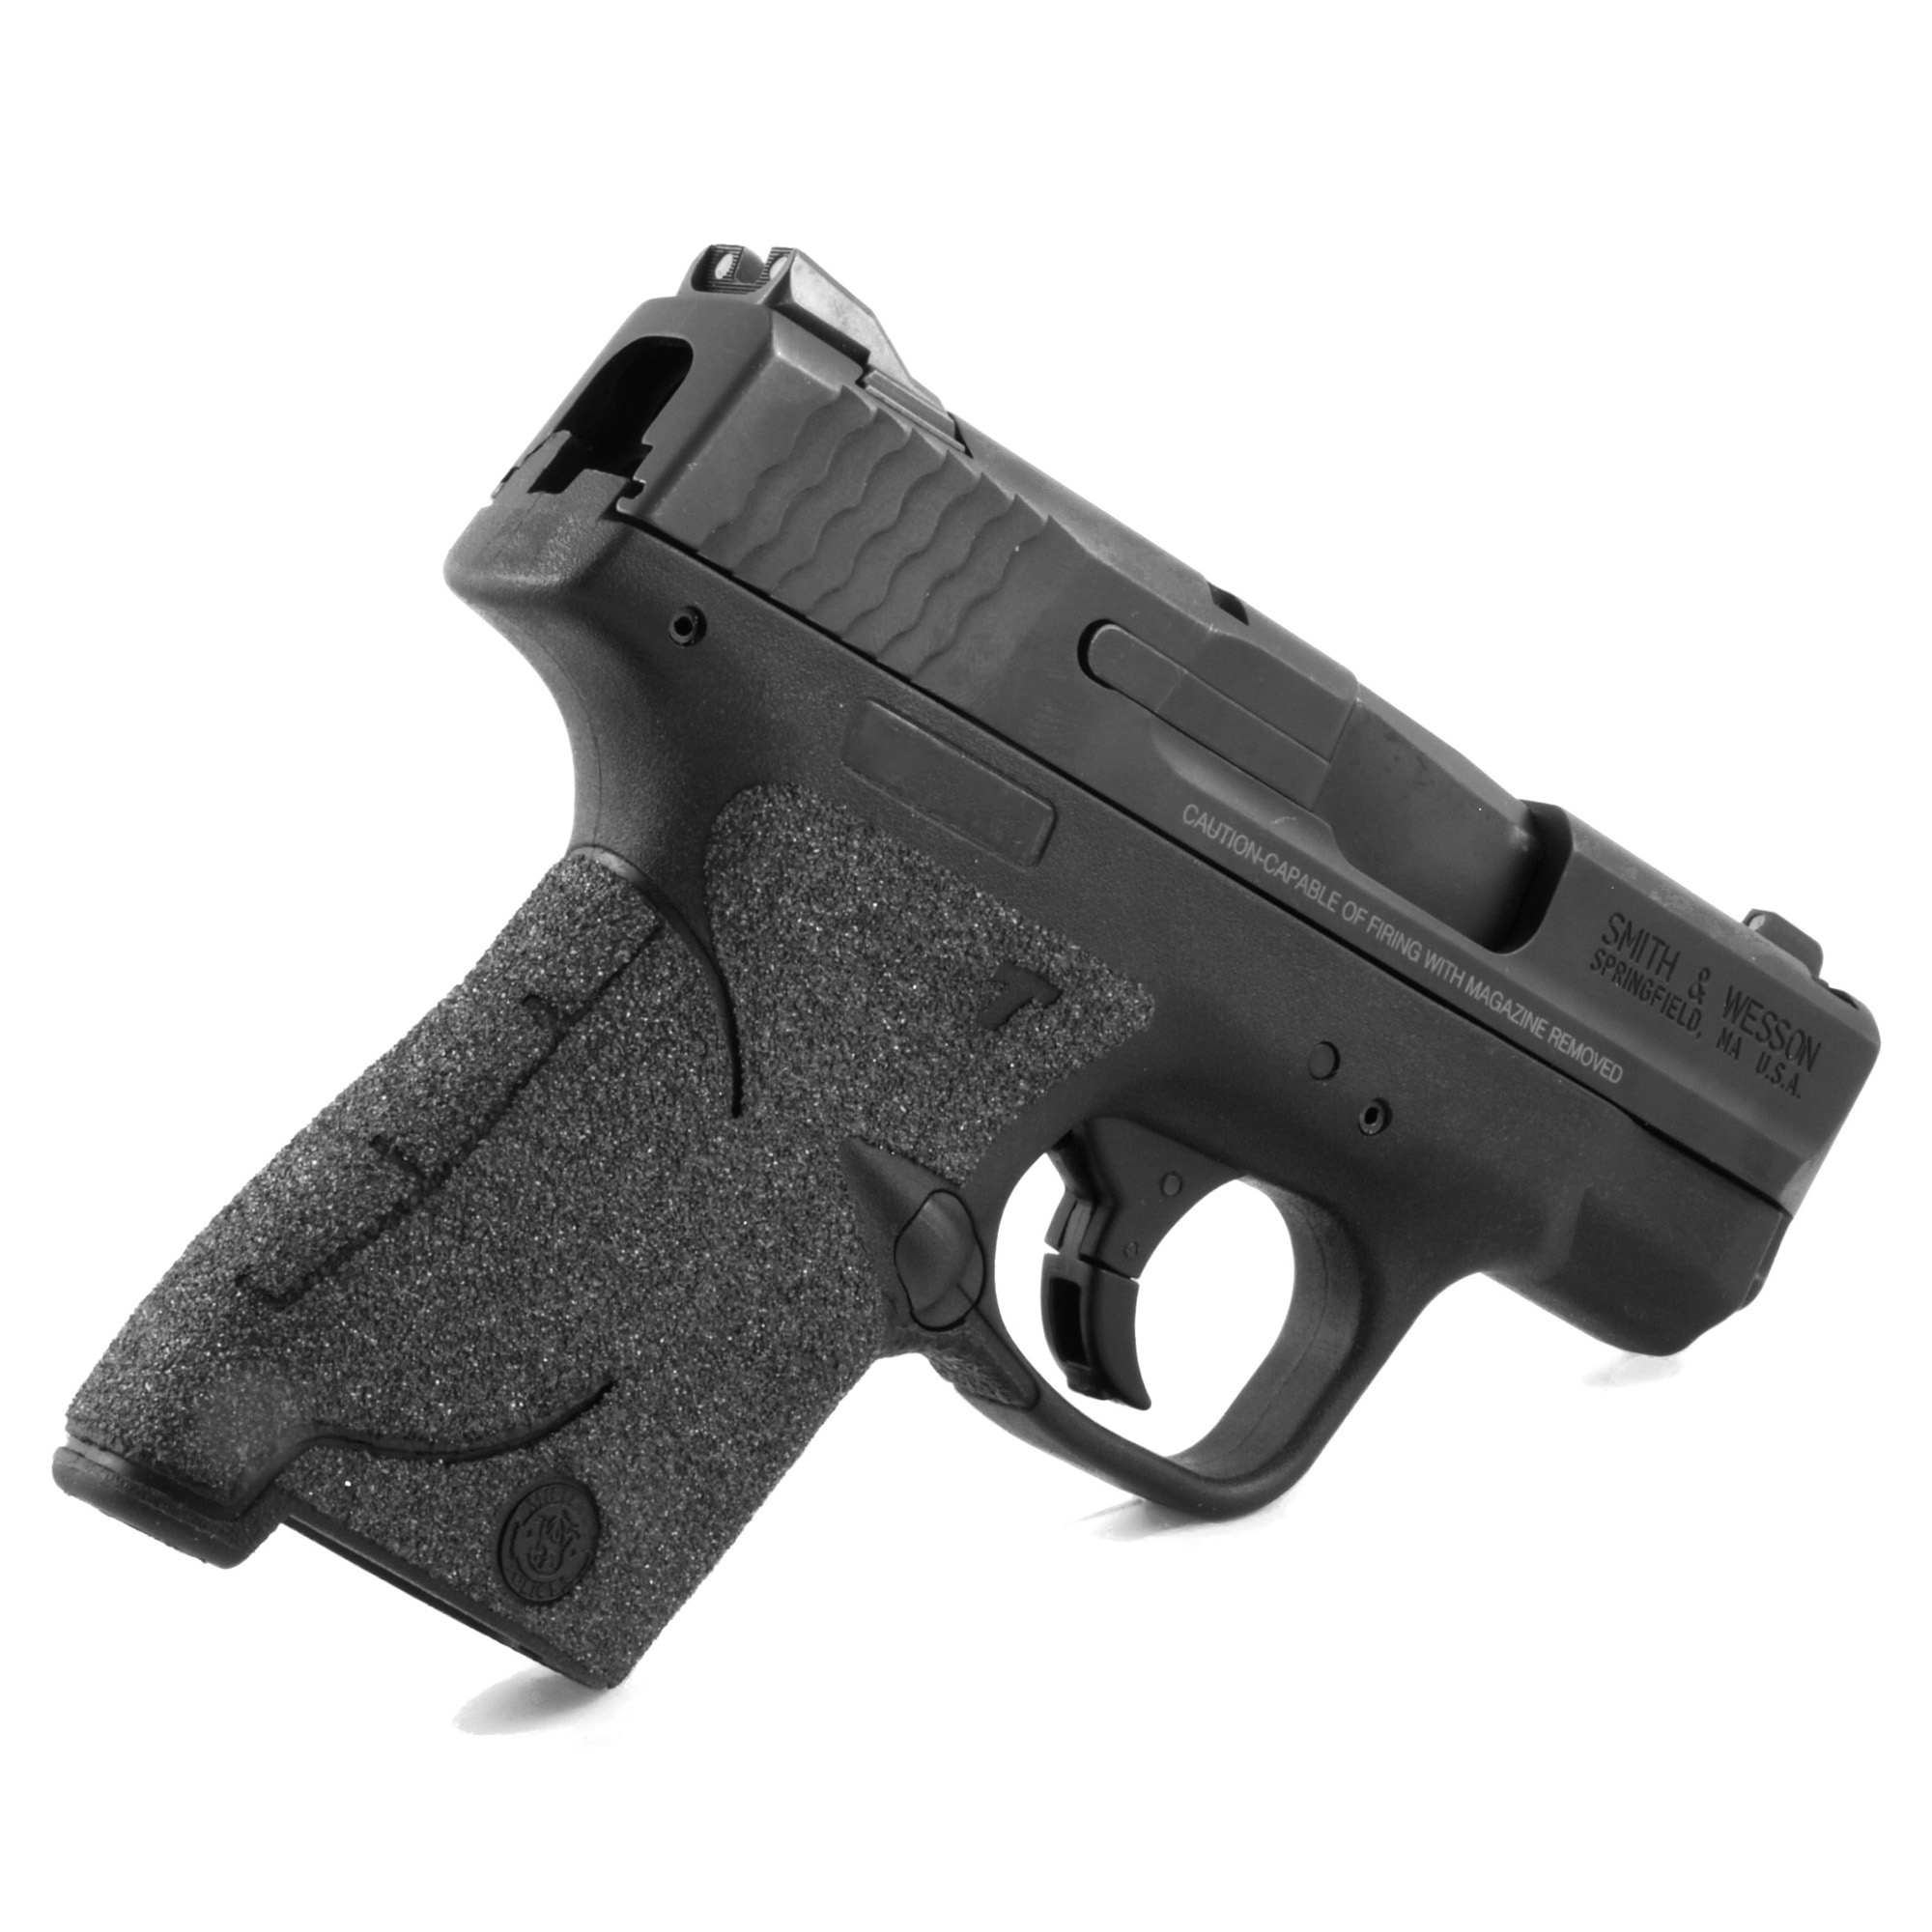 """TALON Grips for Smith & Wesson M&P Shield 9mm"""" .40 Cal. This Rear wrap grip is in the granulate texture and offers full side panel coverage including the thumb rest area"""" full front strap coverage"""" and full coverage on the backstrap. This grip has graphic cutouts for the M&P emblem on both sides of the firearm."""